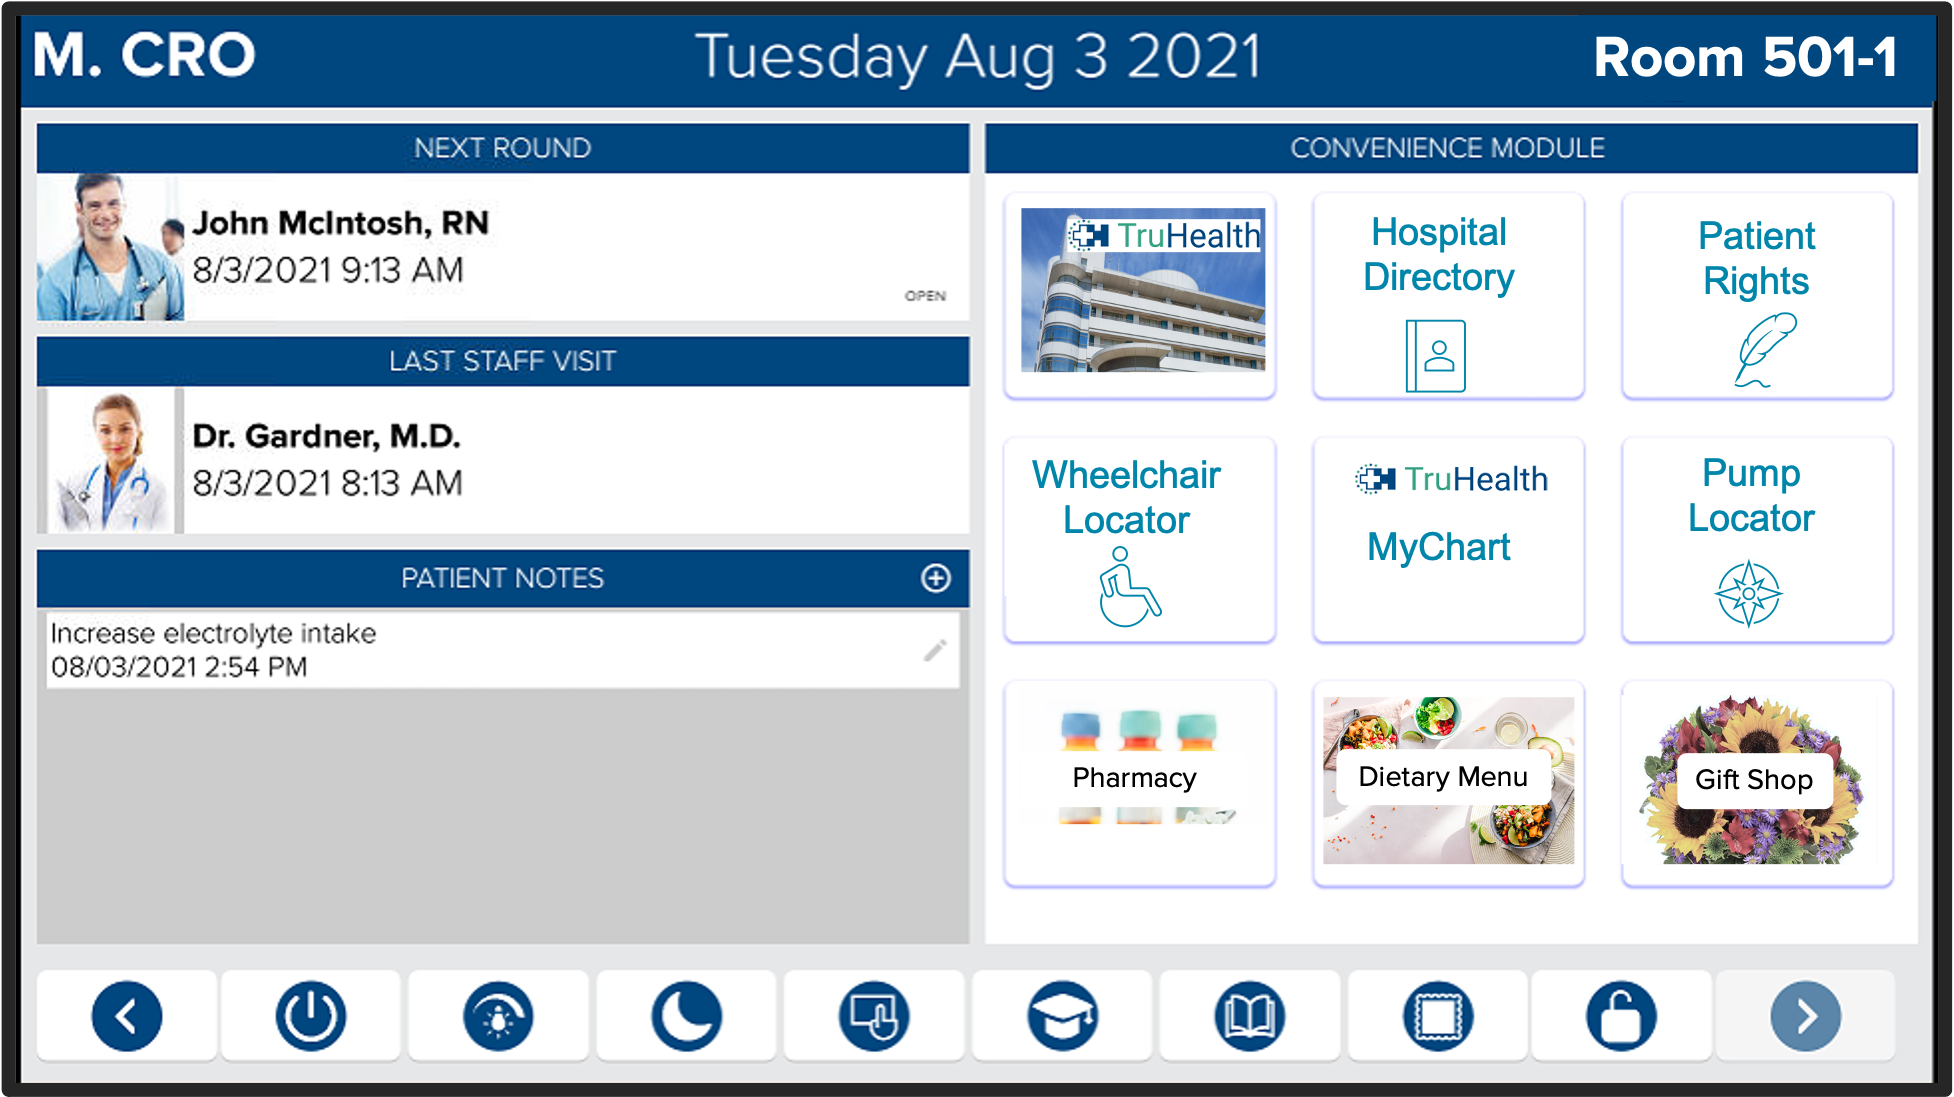 HCI offers the Convenience Module on our hospital whiteboards for greater patient engagement and patient convenience, with access to information to make their healthcare stay more informative and productive.